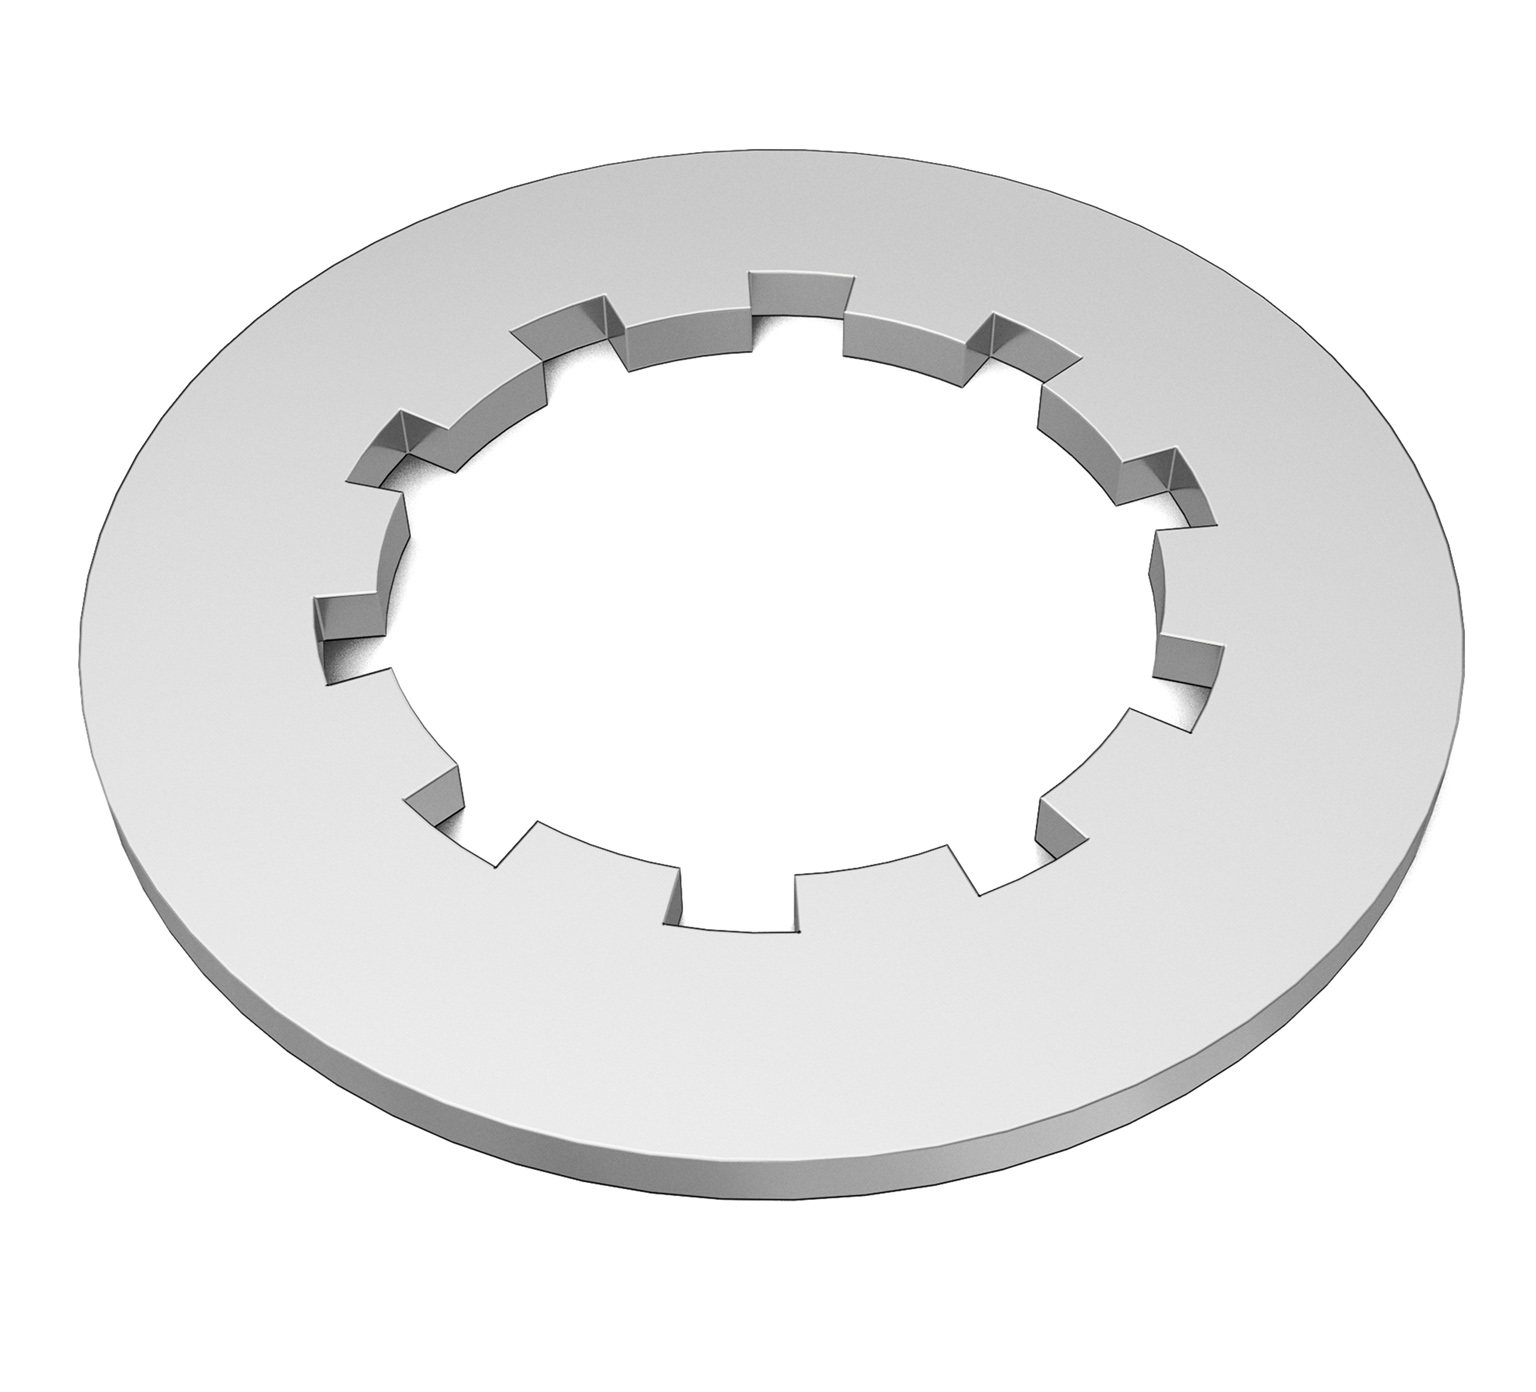 43953 Stainless Steel Lock Washer - 0.68 x 0.04 in alt 1